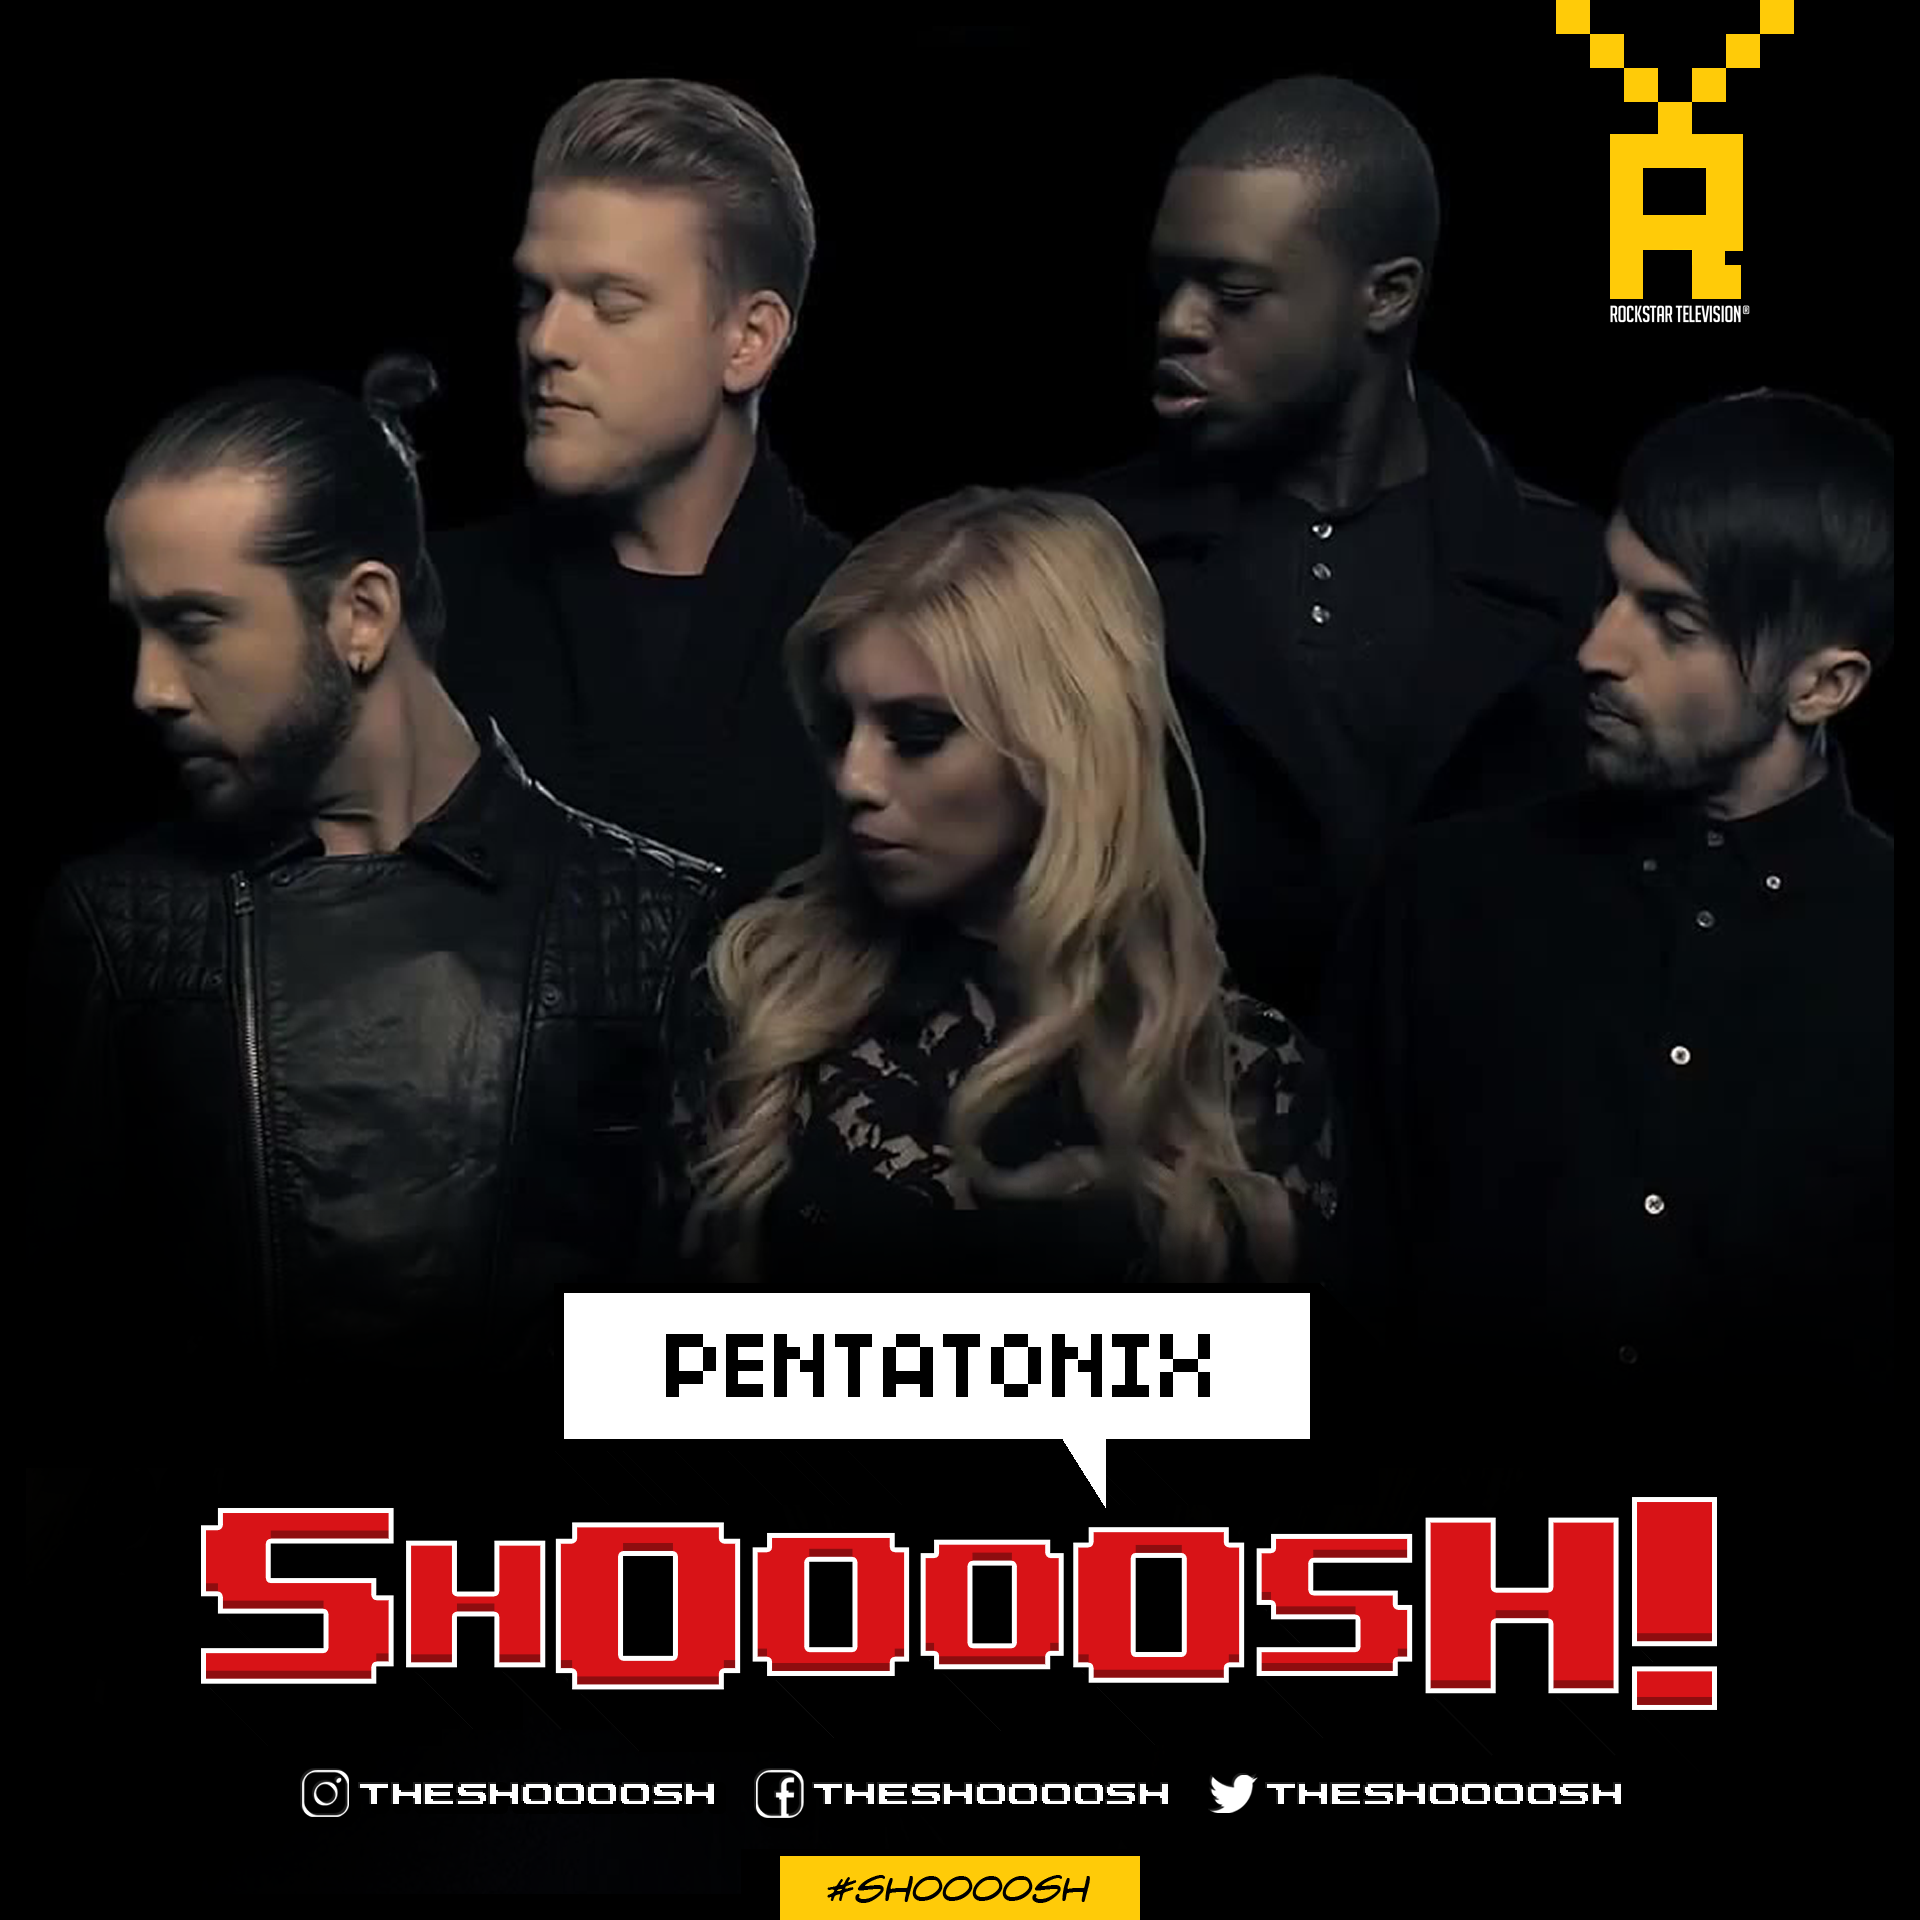 SHOOOOSH! PENTATONIX00001